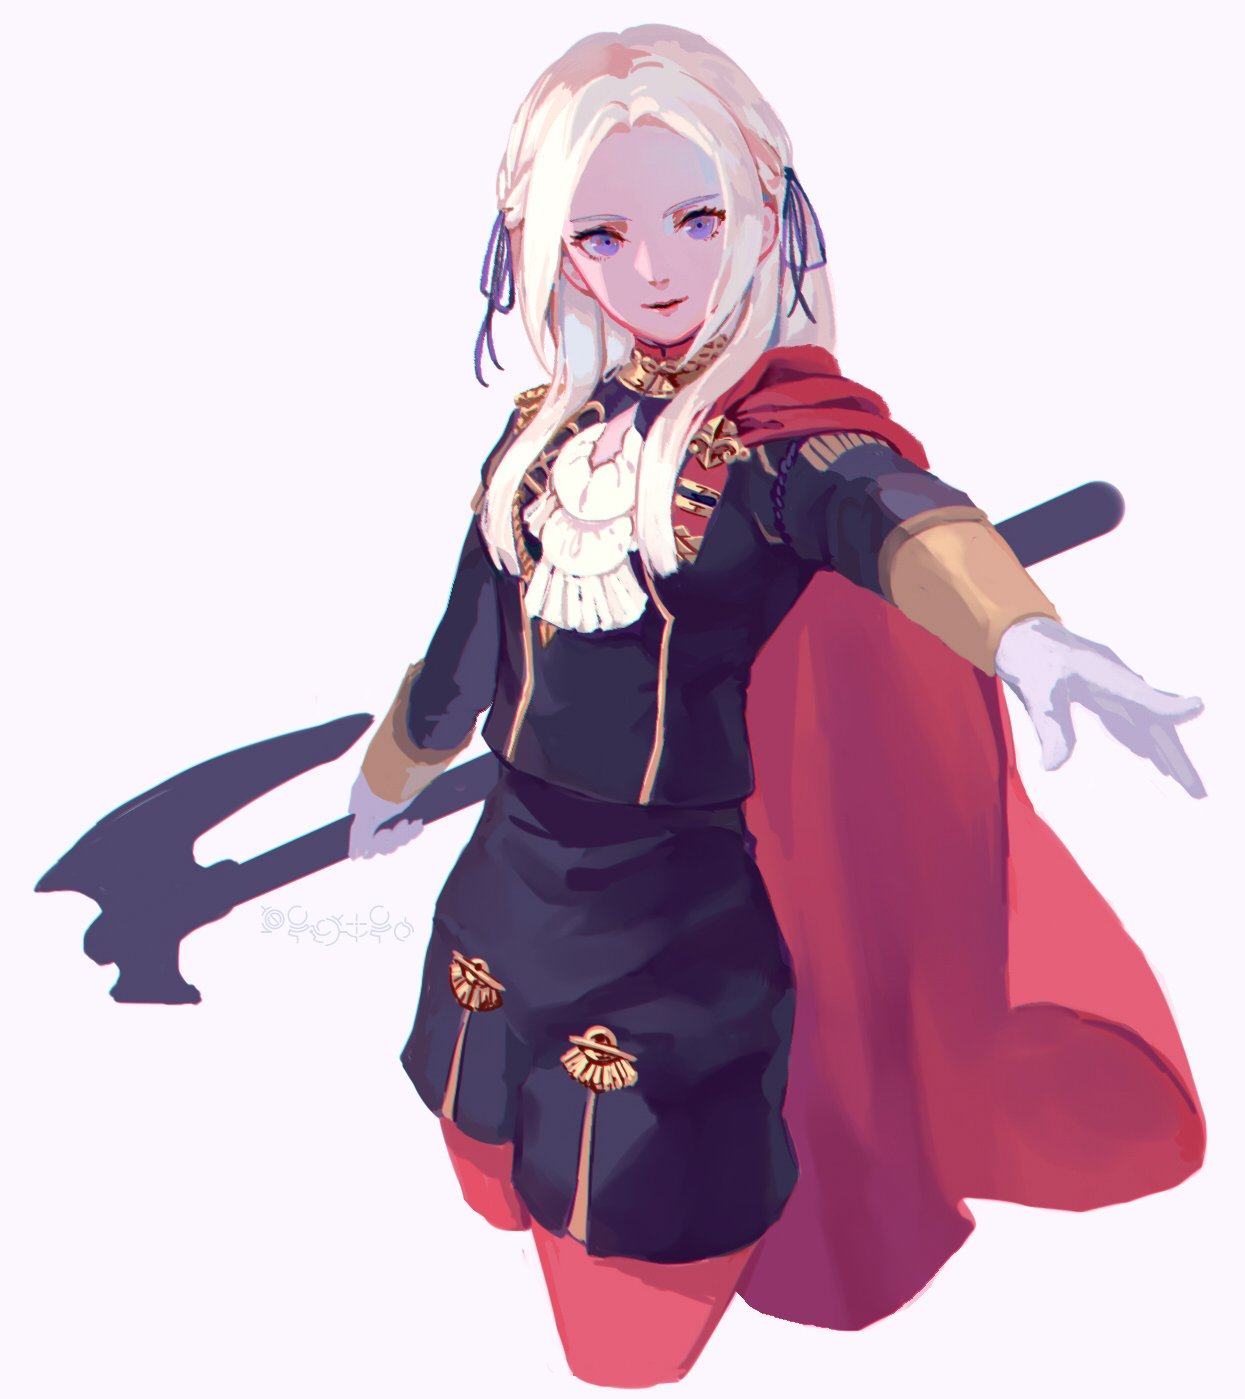 1girl axe blonde_hair blue_eyes cape cravat edelgard_von_hresvelgr_(fire_emblem) fire_emblem fire_emblem:_fuukasetsugetsu gloves hair_ornament highres long_hair looking_at_viewer mole mole_under_mouth pantyhose rheamii simple_background smile solo uniform weapon white_background